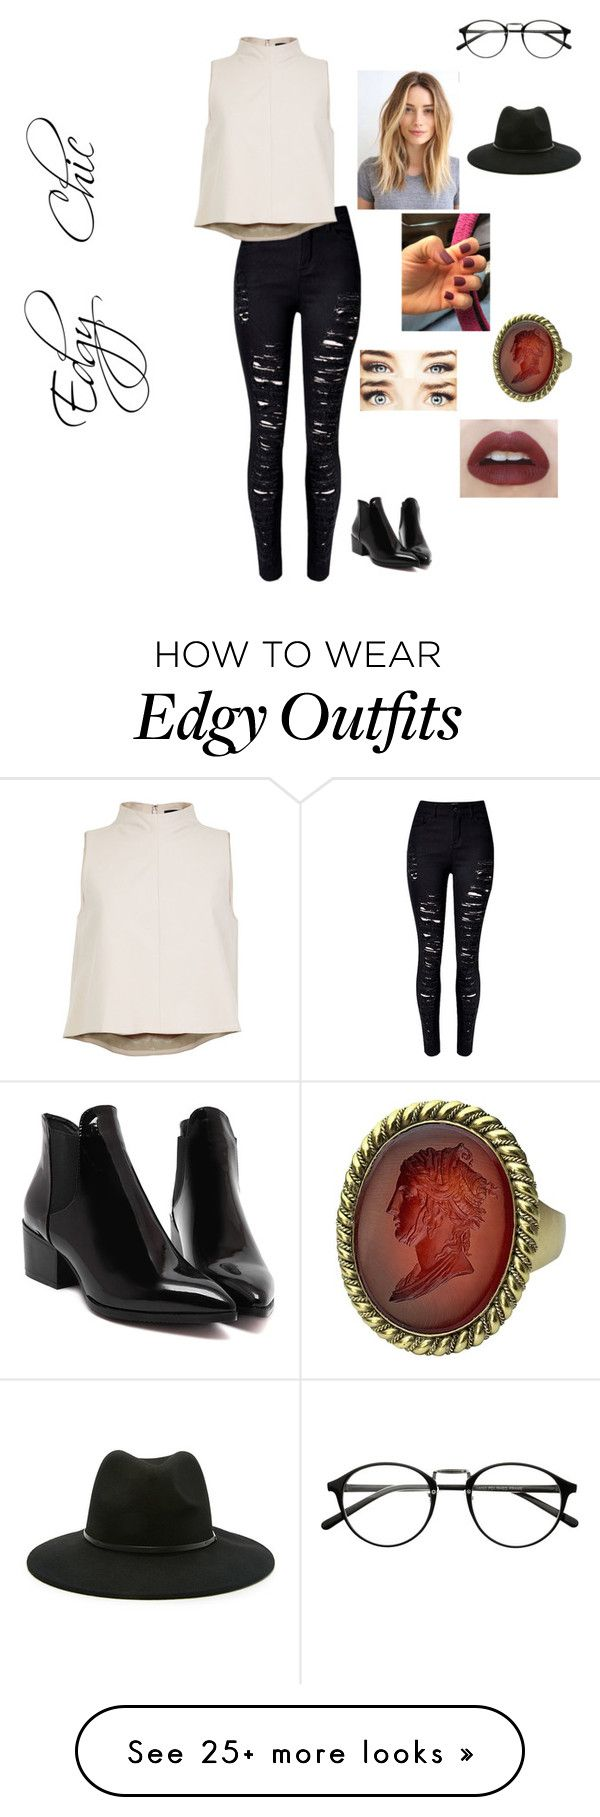 """Edgy Chic."" by haleym-31 on Polyvore featuring TIBI and Forever 21"